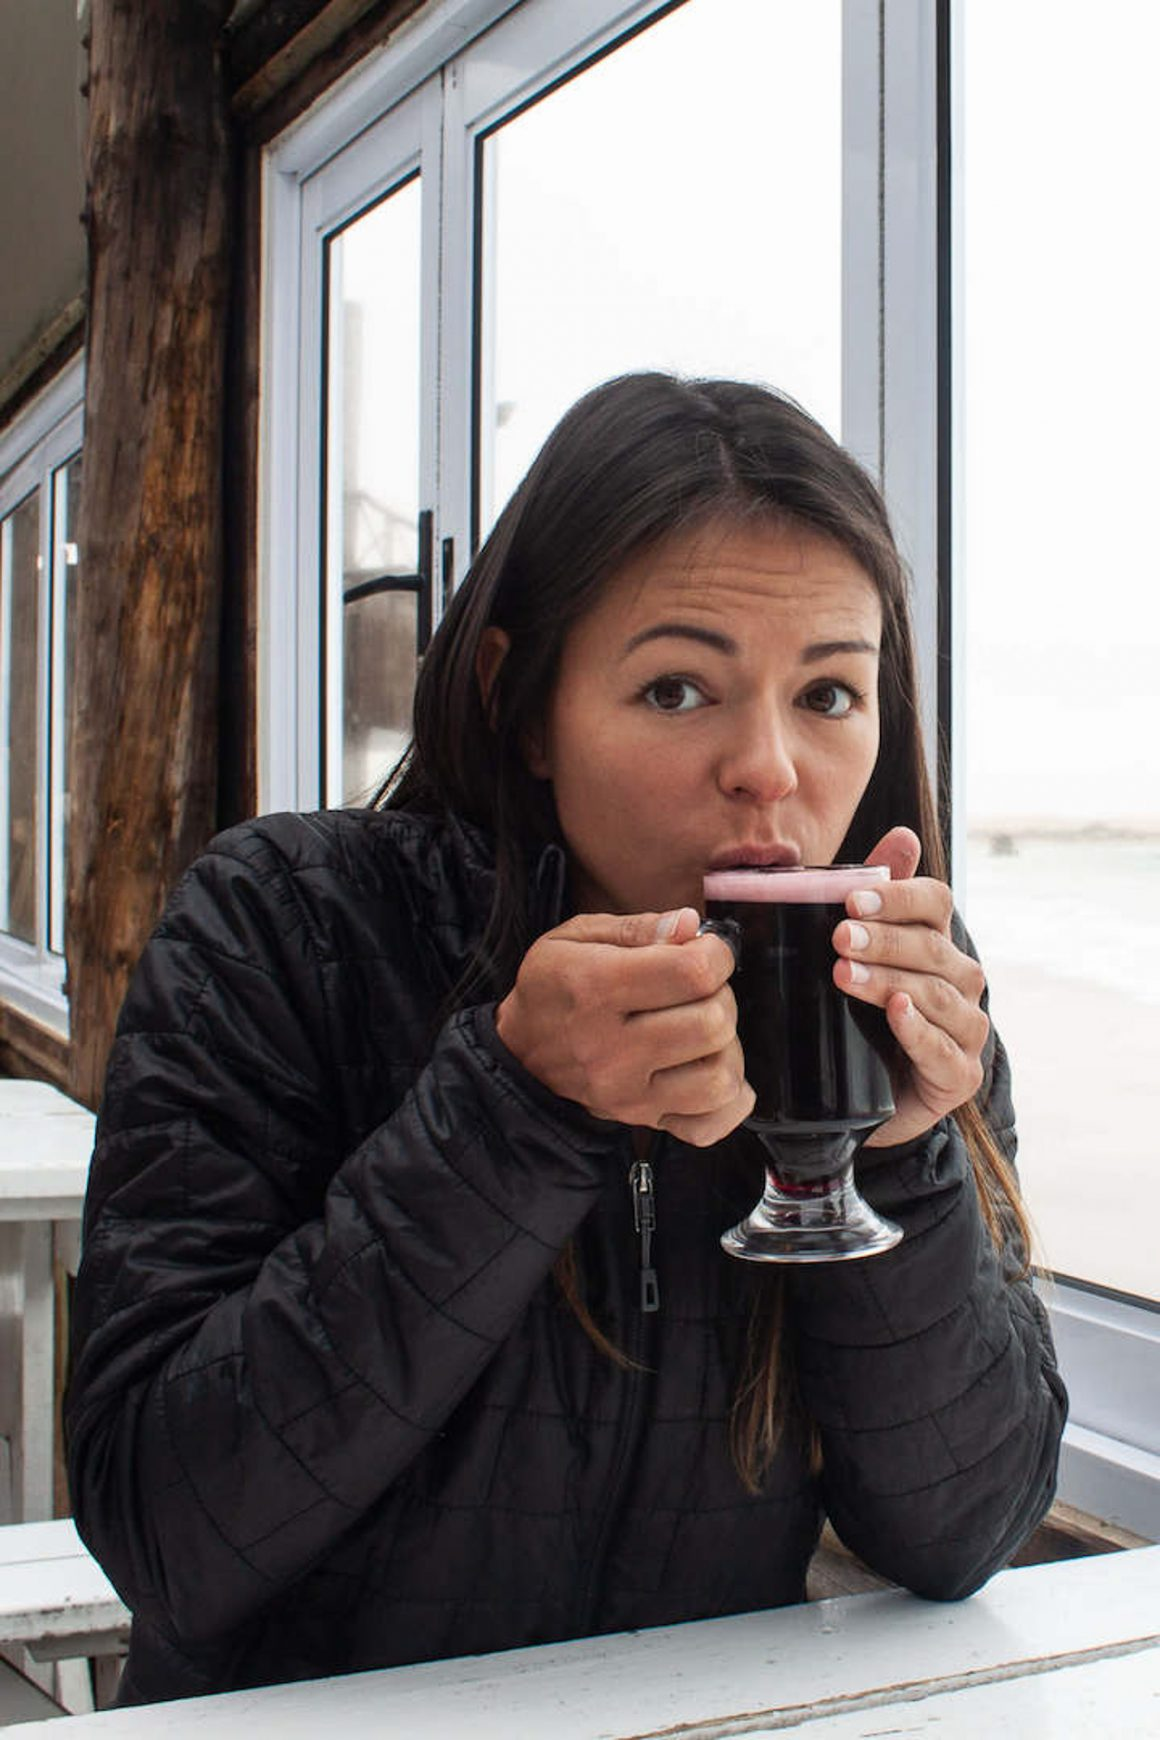 Kim warming up with her puffy down jacket drinking Gluwein in Swakopmund, Namibia.